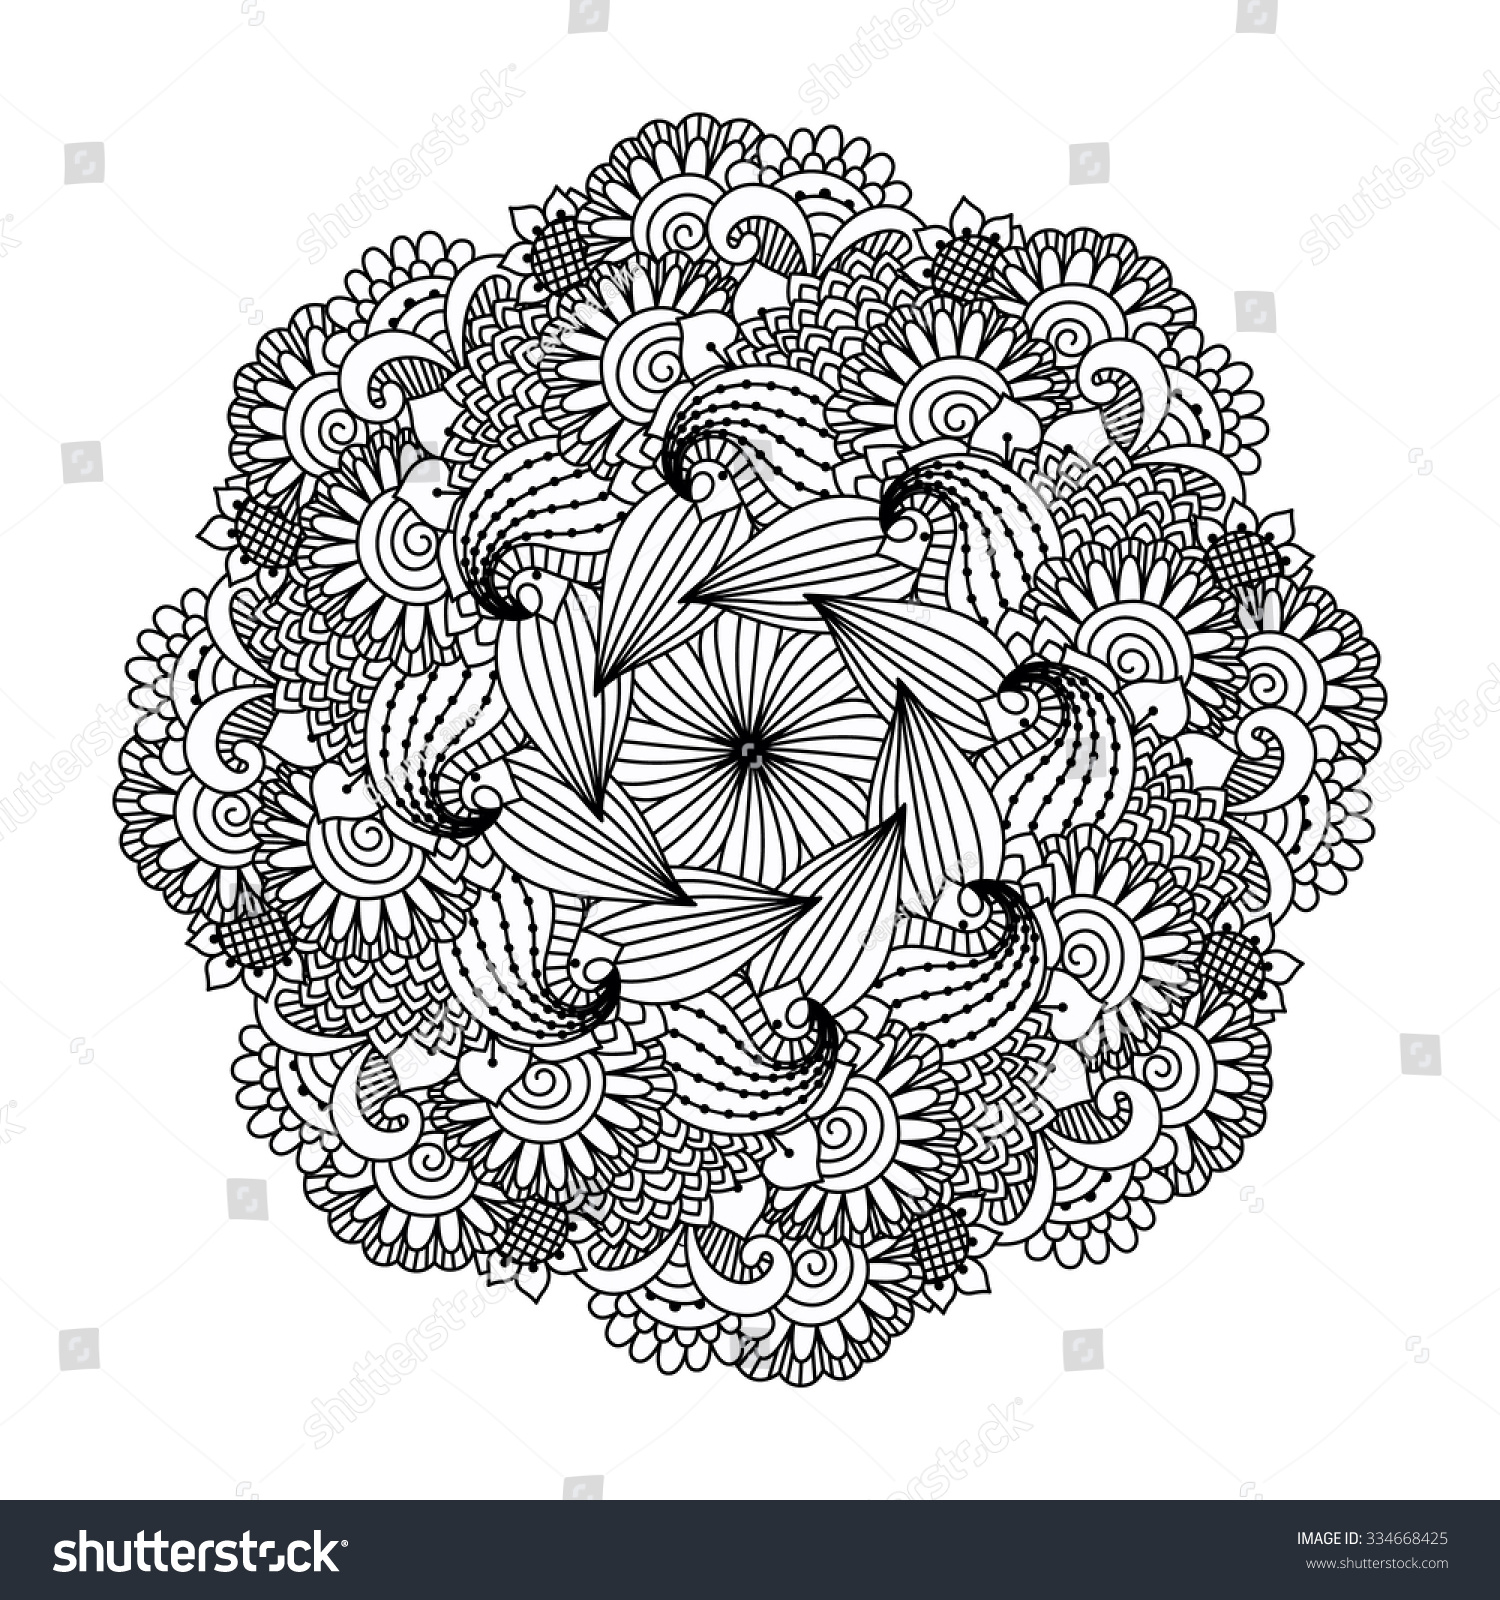 Valentines Day Heart Zentangle Black And White Love Passion Symbol In Adult Coloring Books Style Vector Illustration Can Be Used For Web Design